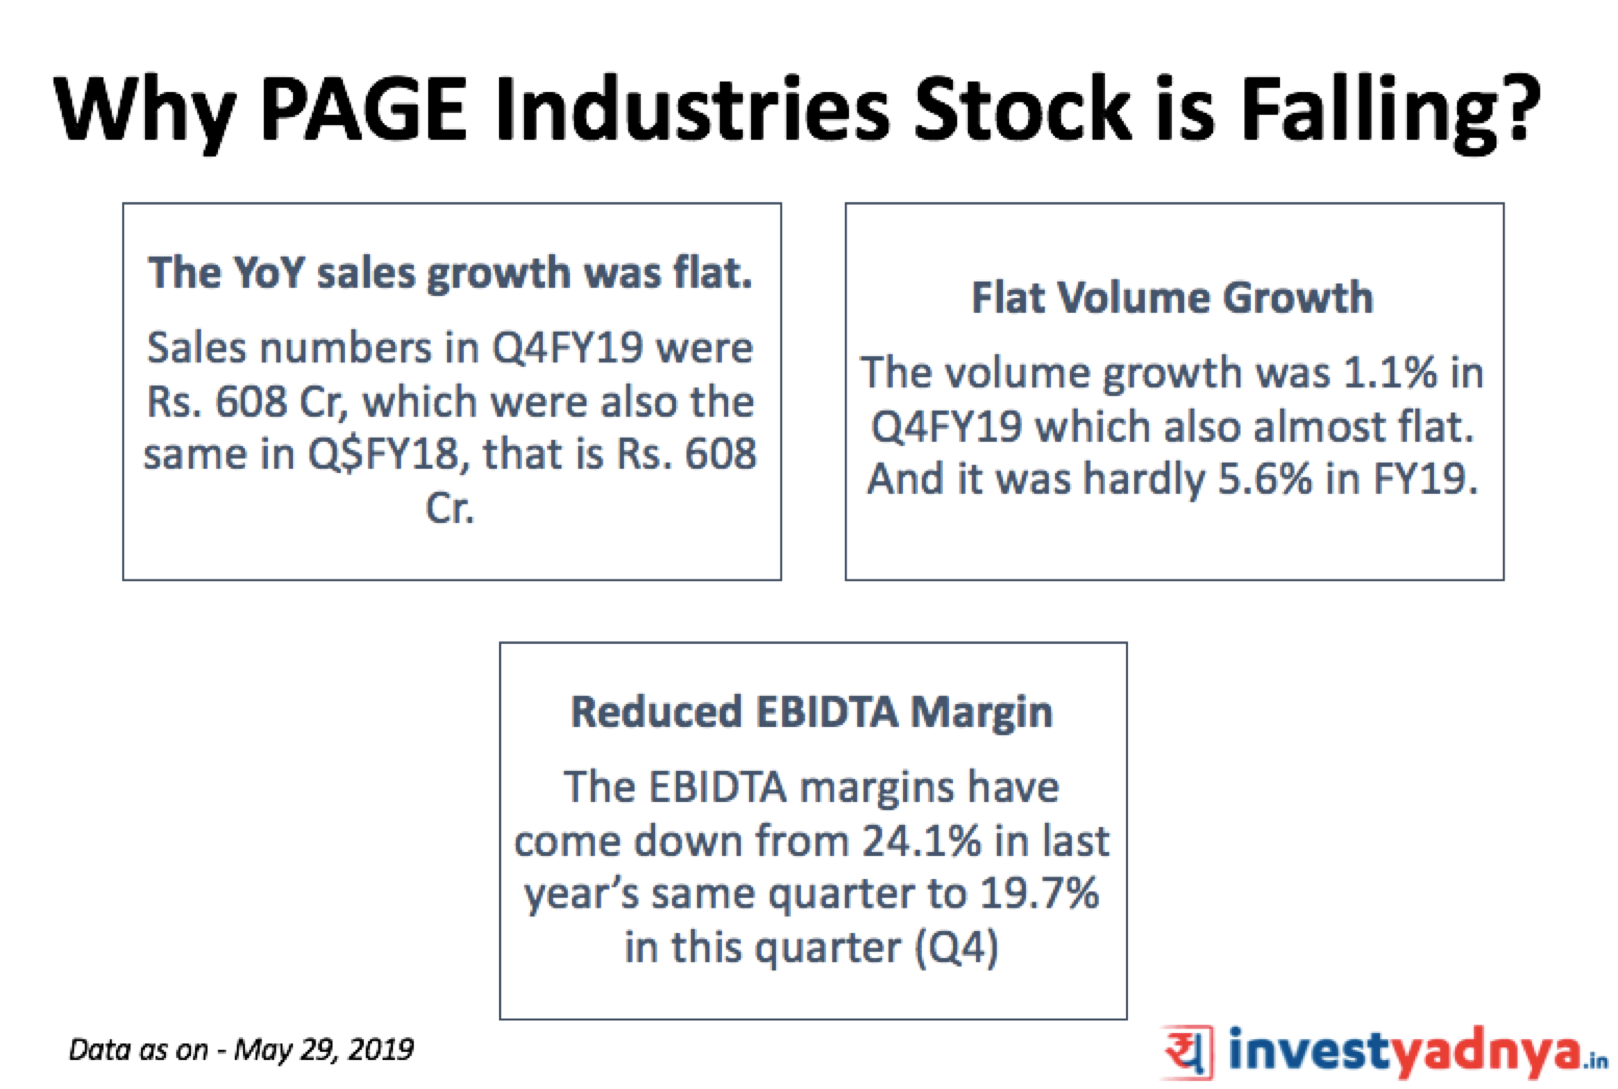 Why Page Industries Stock is falling